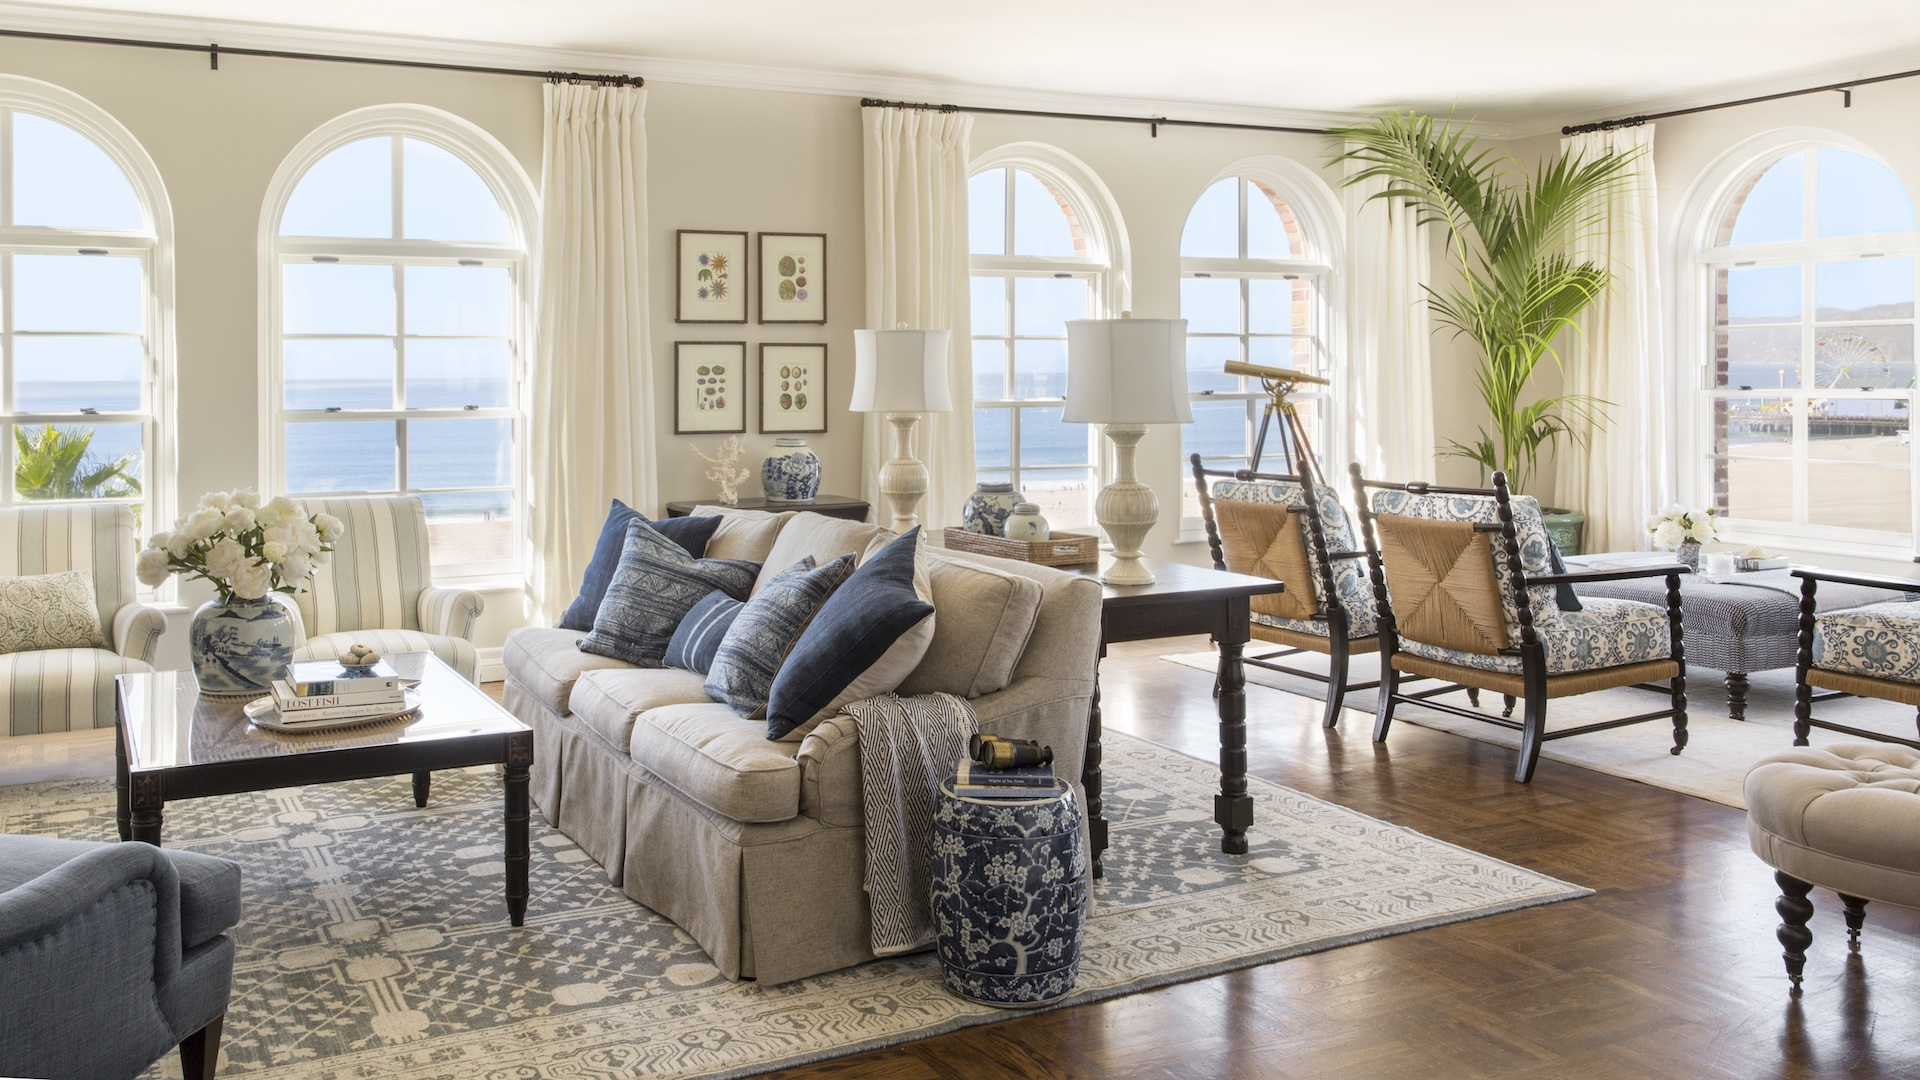 6 Surprising Ways Home Staging Can Sabotage Your Sale